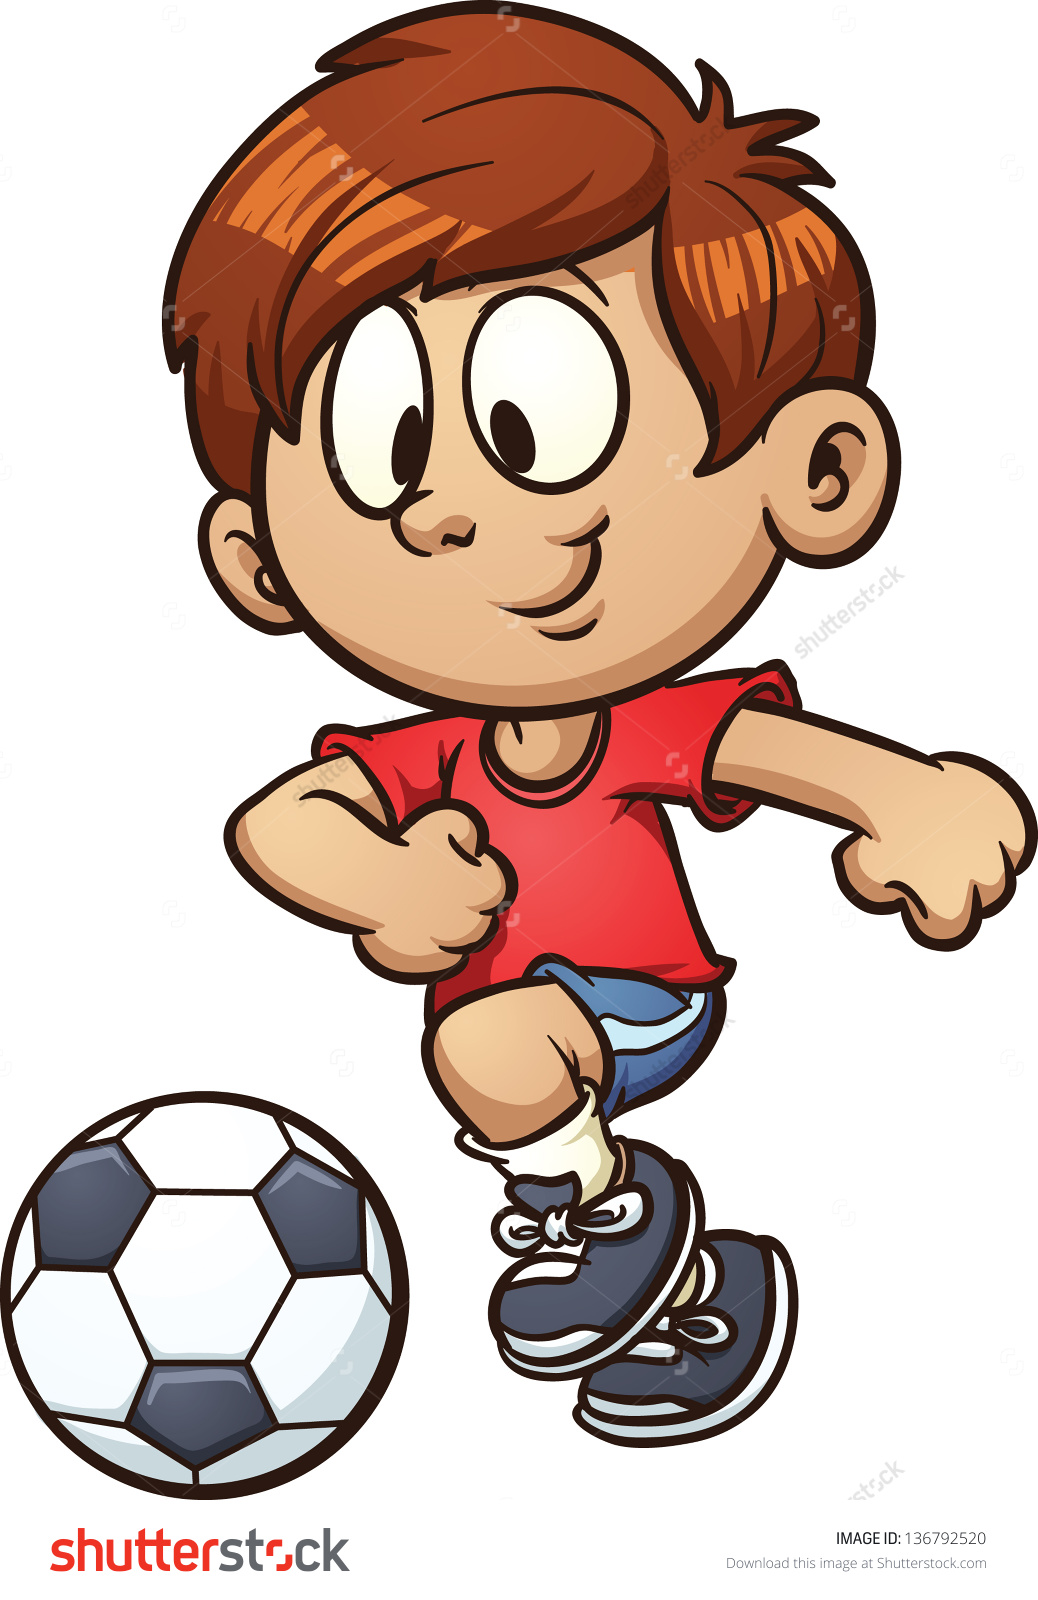 Free Soccer Boy Cliparts, Download Free Clip Art, Free Clip Art on.